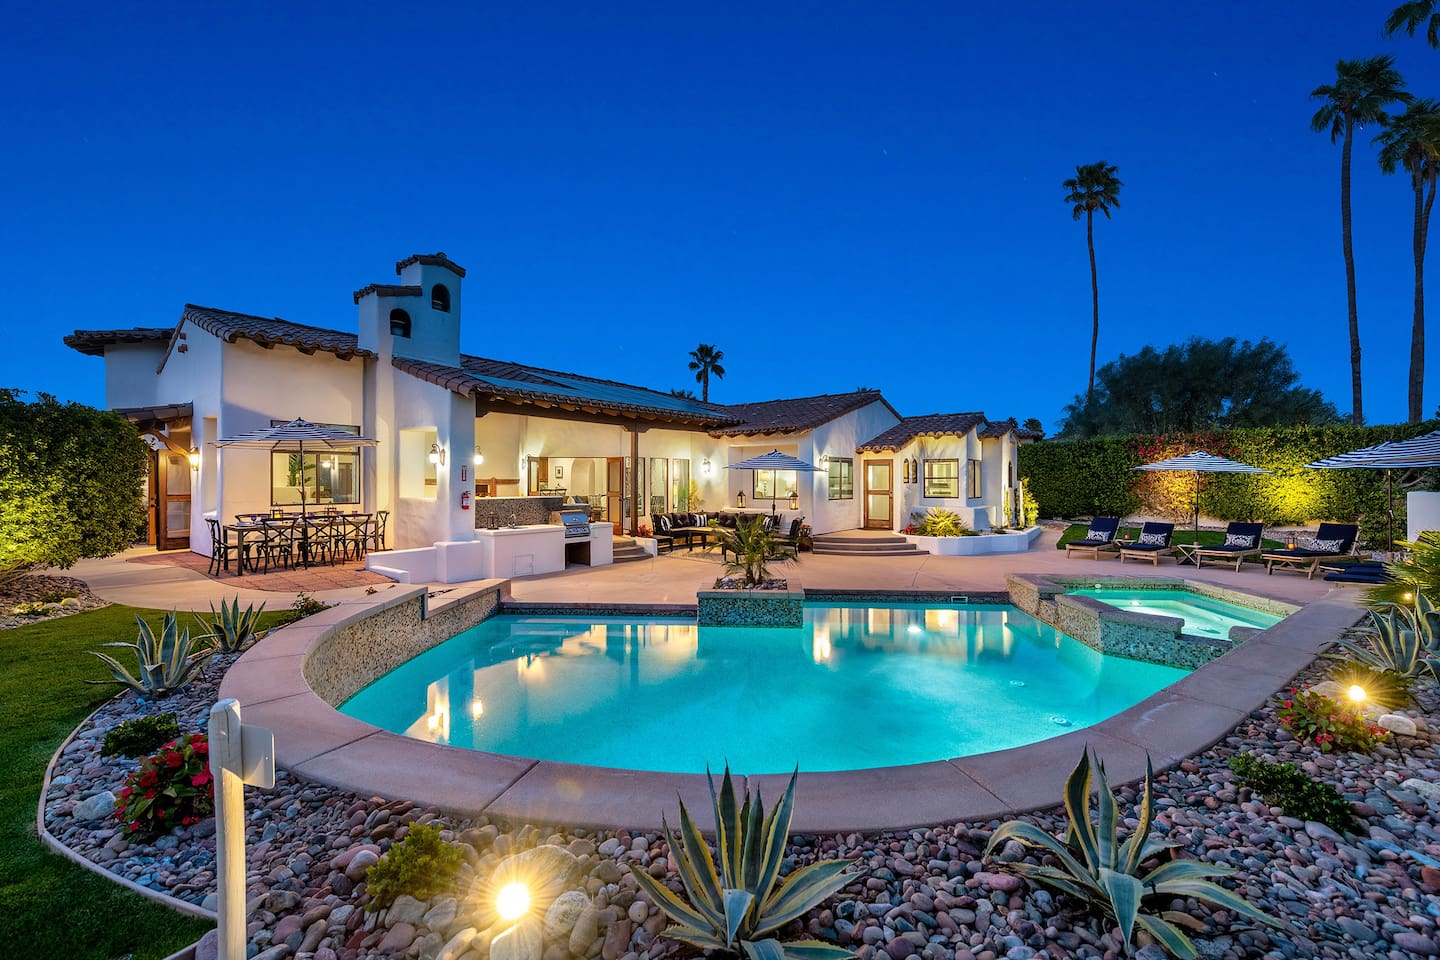 Private, Huge Pool Patio & Yard